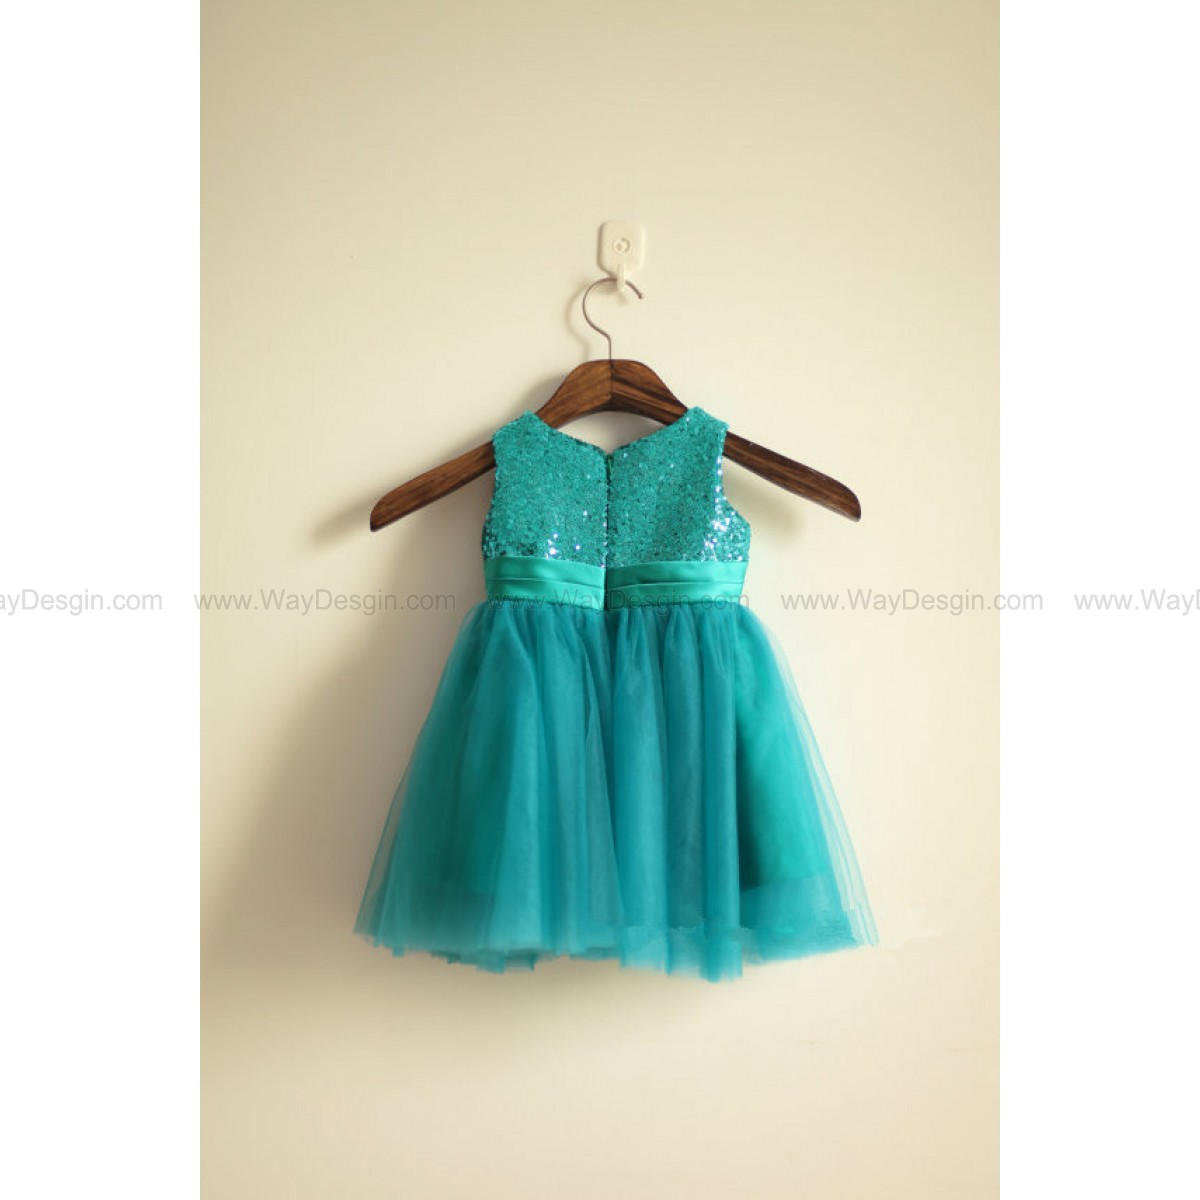 Green Sequin Tulle Flower Girl Dress Infant Toddler PAGEANT Bridal Party Dress with Ruffle Flowers